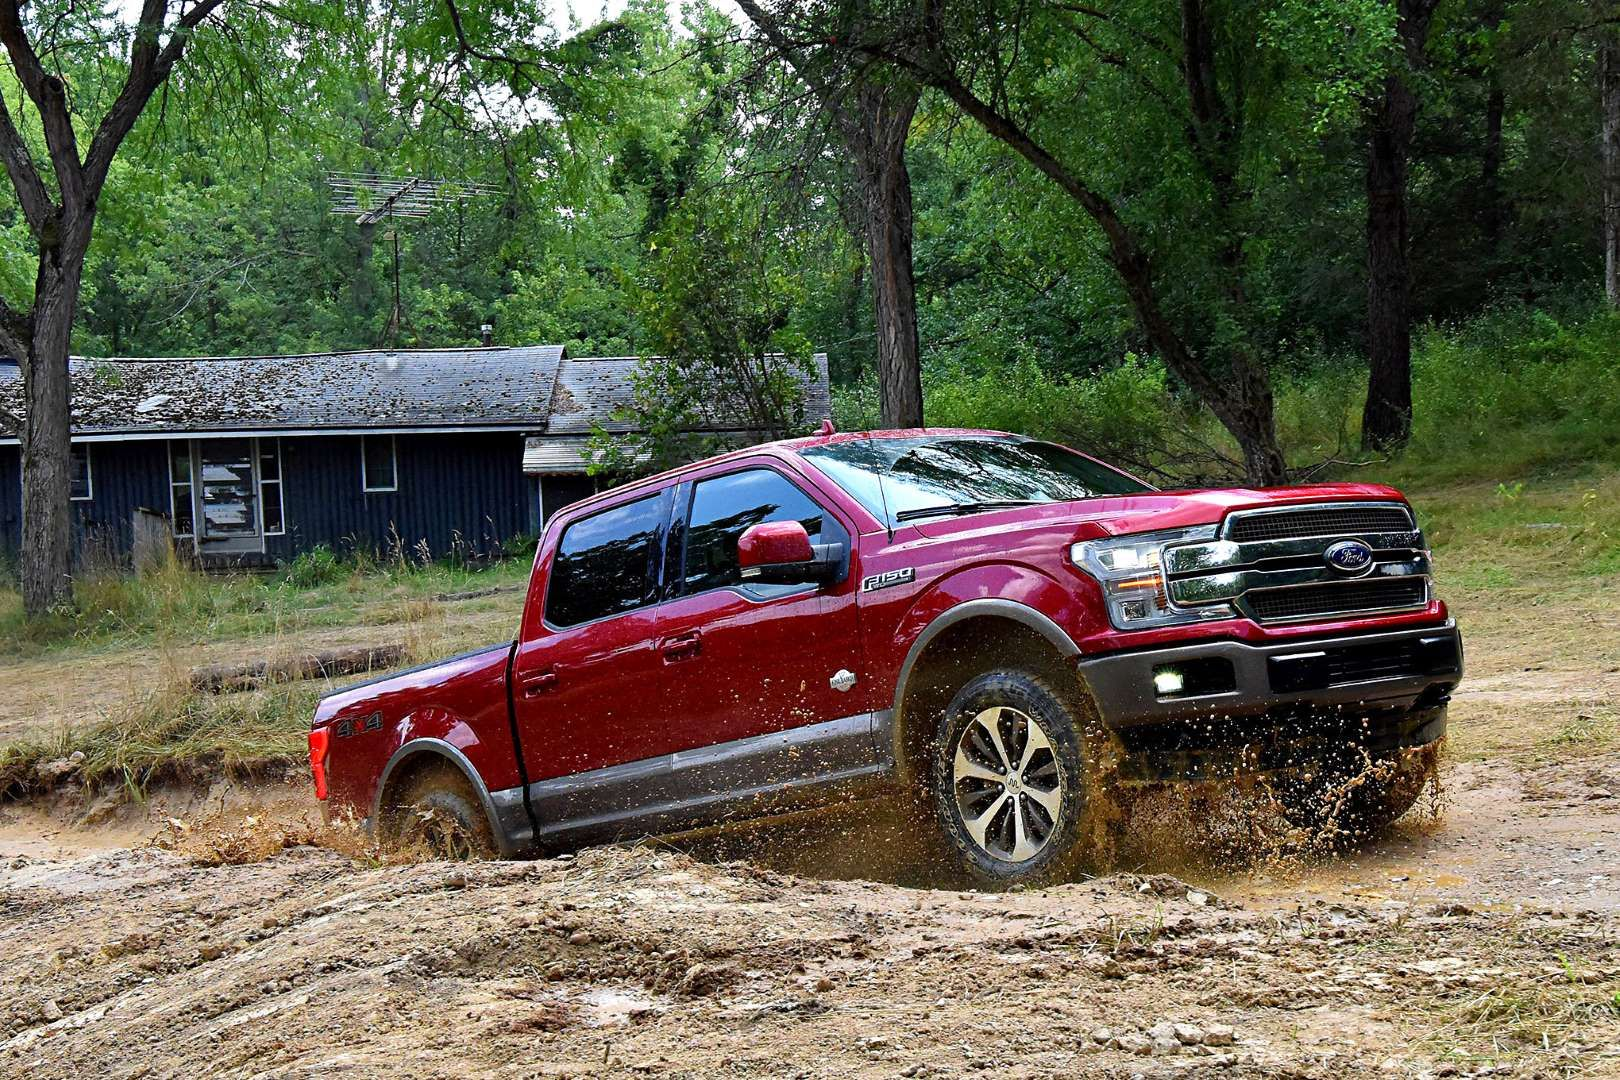 008 2018 Ford F150 First Drive Jpg Courtesy Of Ford Ford F150 2018 Ford F150 Ford